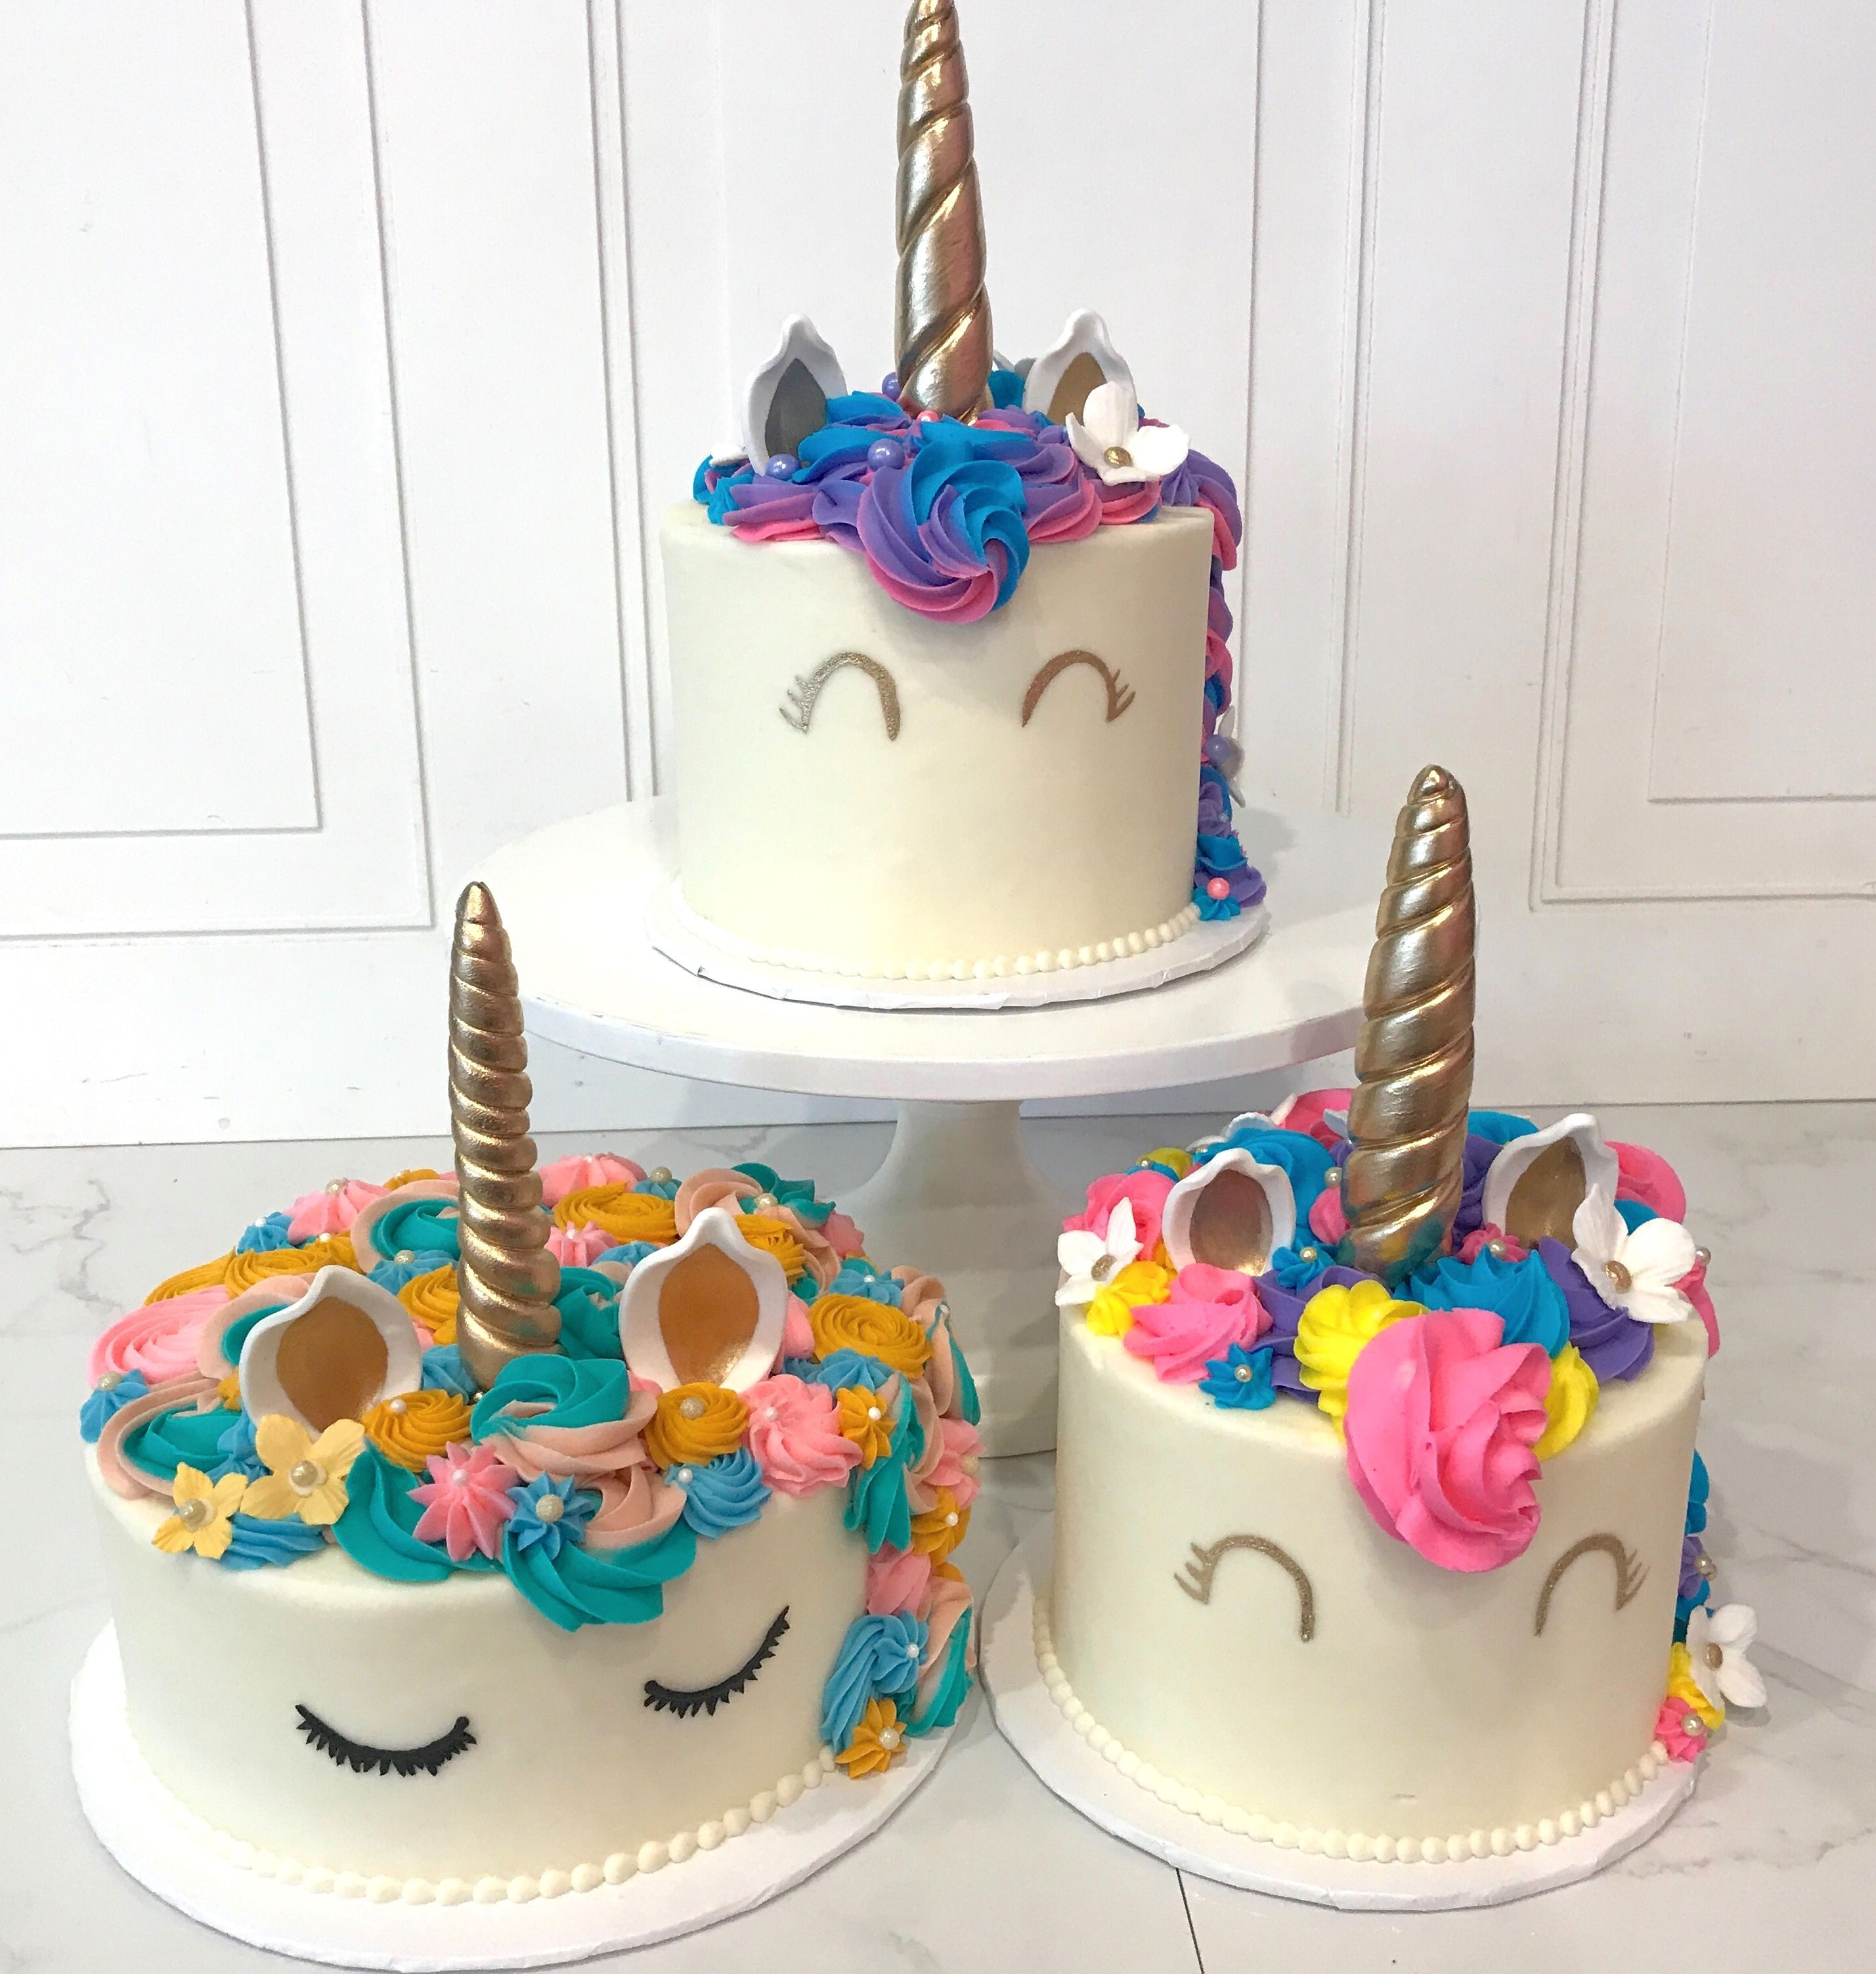 Unicorn Cakes by 3 Sweet Girls Cakery | Our Cakes | Pinterest ...